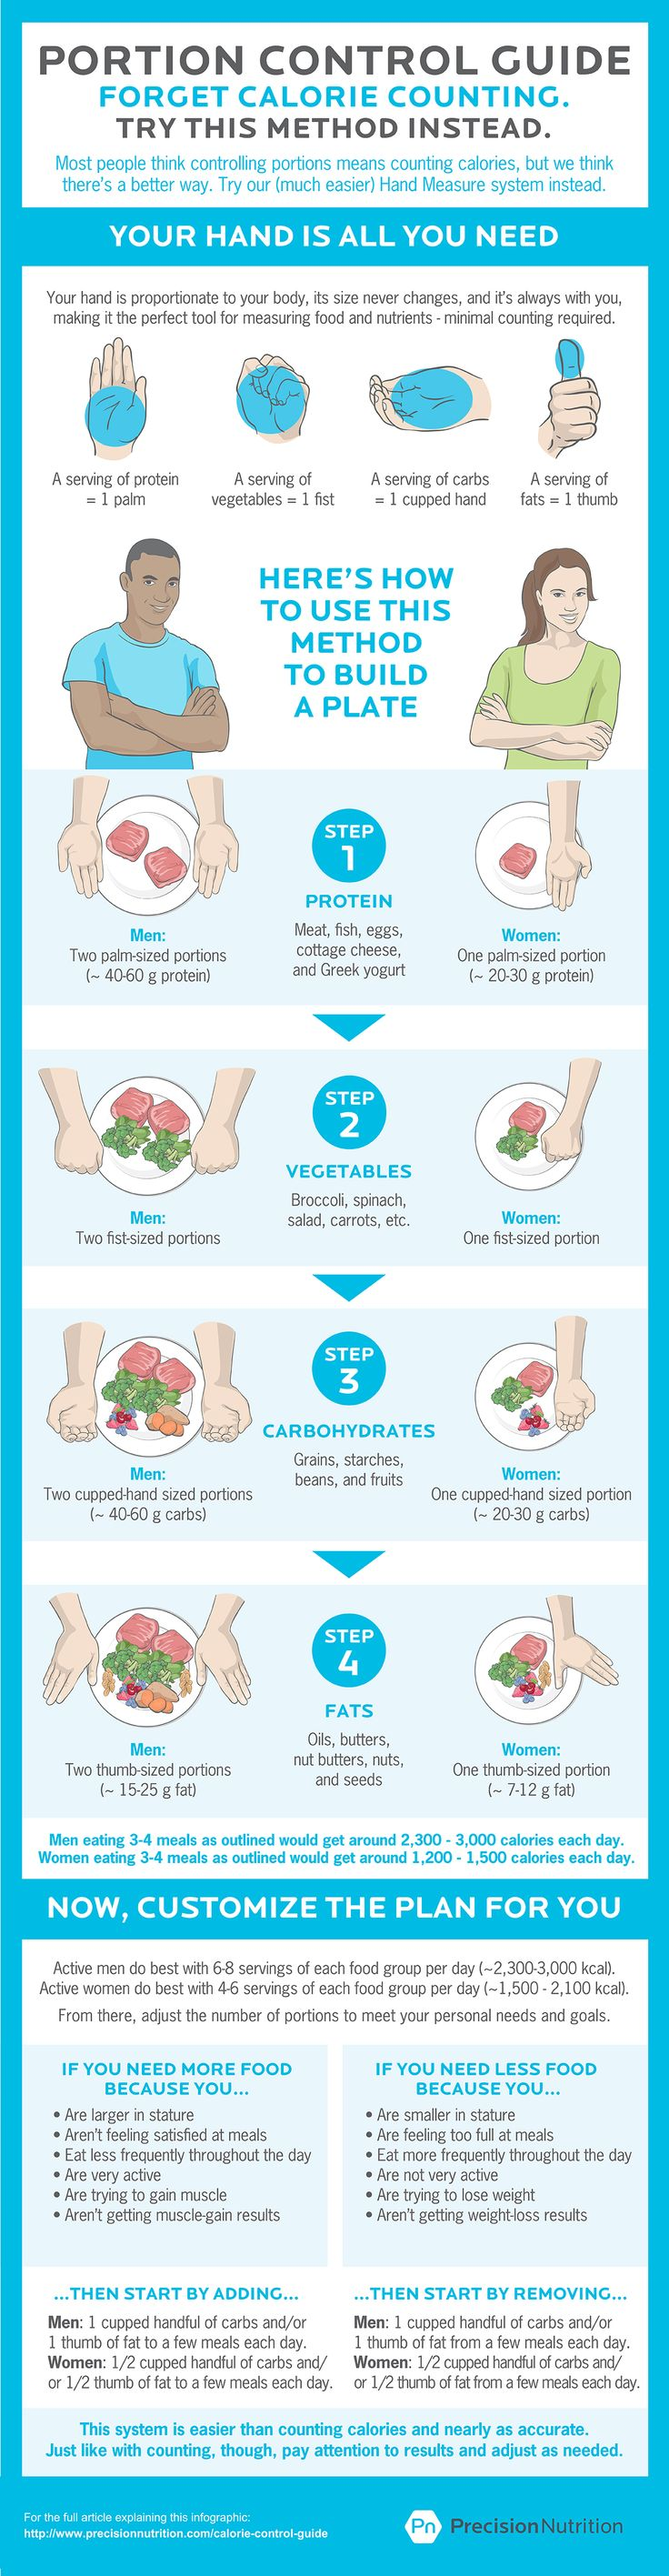 Portion Control